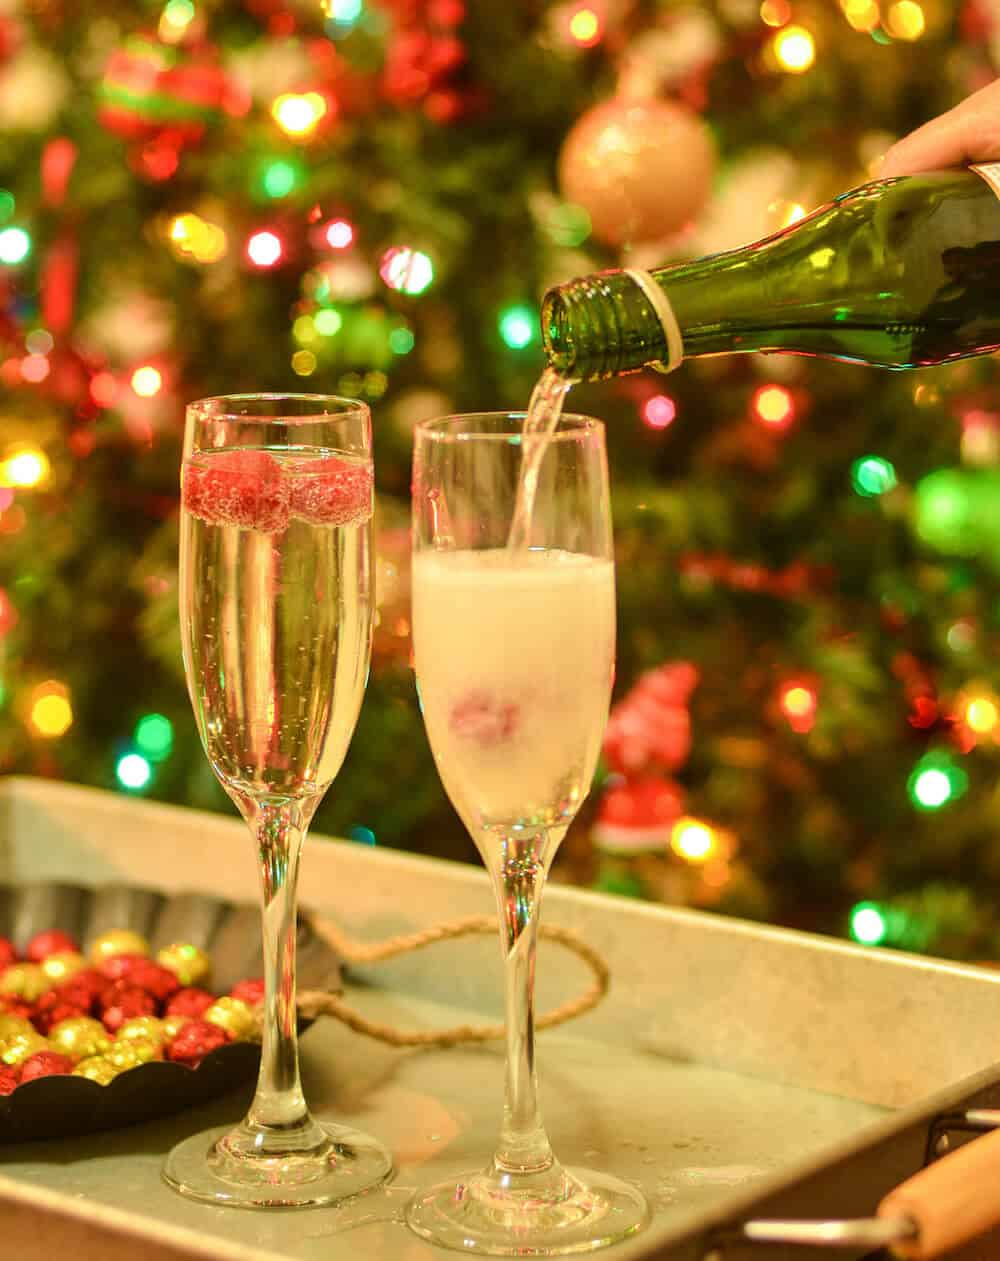 Ring in the new year with this delicious champagne drink! You'll love this cocktail that includes raspberry liqueur and vodka. Cheers!